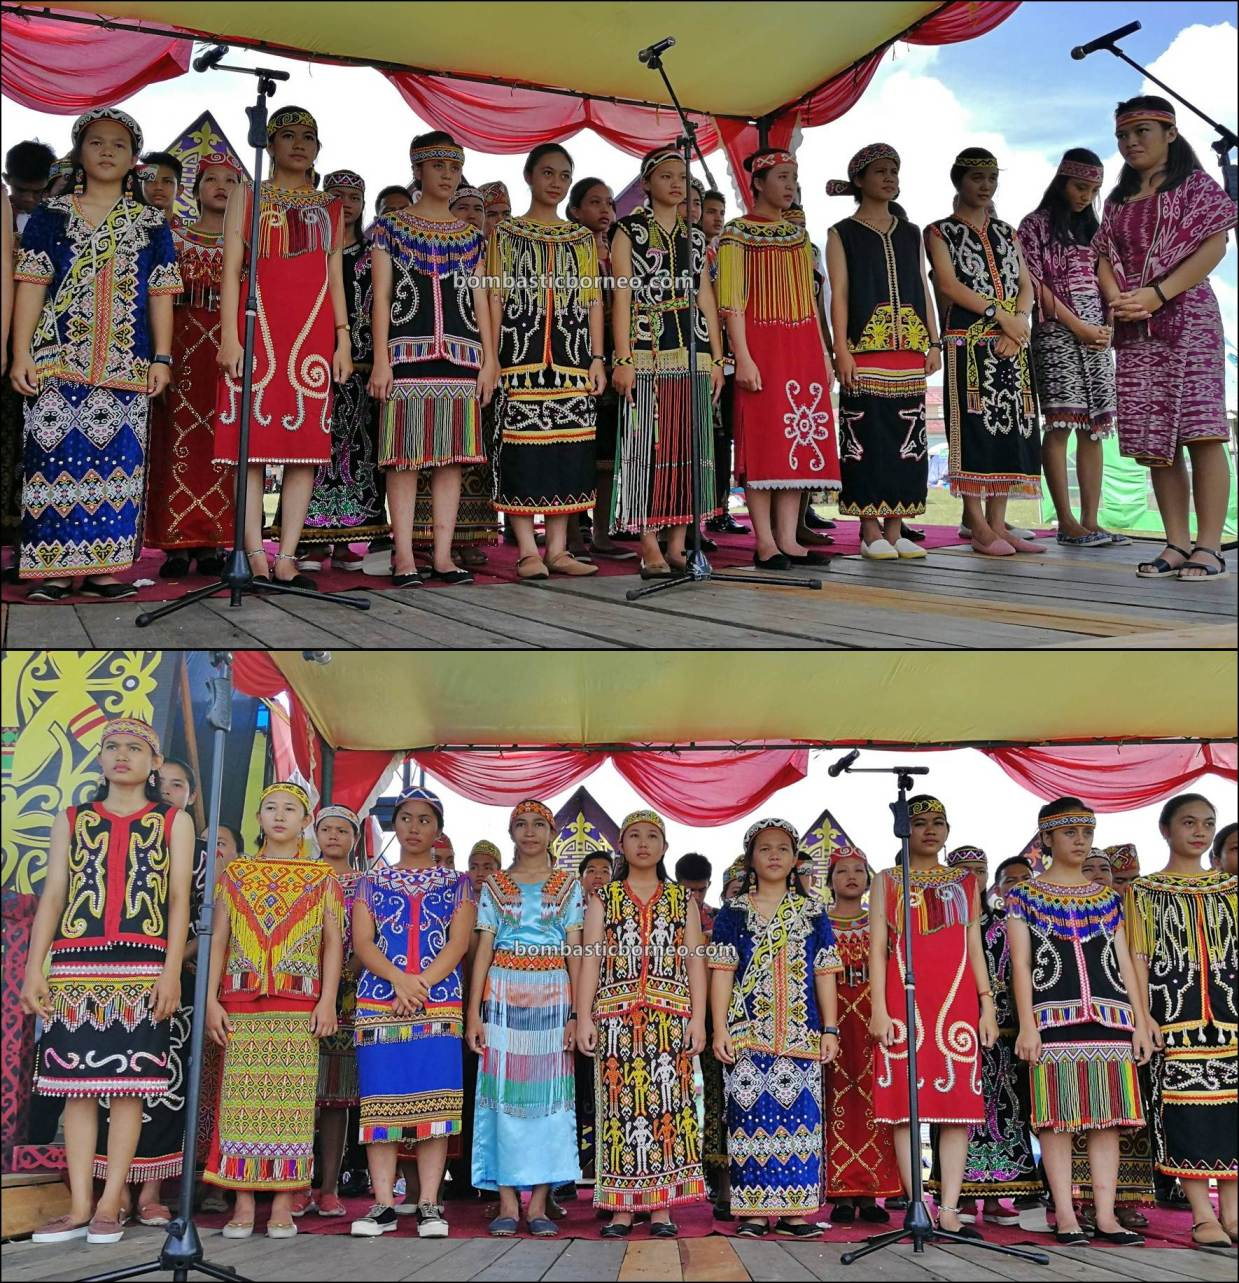 thanksgiving, traditional, culture, event, Indonesia, indigenous, native, tribal, Tourism, tourist attraction, travel guide, Trans Borneo, 卡普阿斯胡卢丰收节, 印尼西加里曼丹, 原住民达雅文化